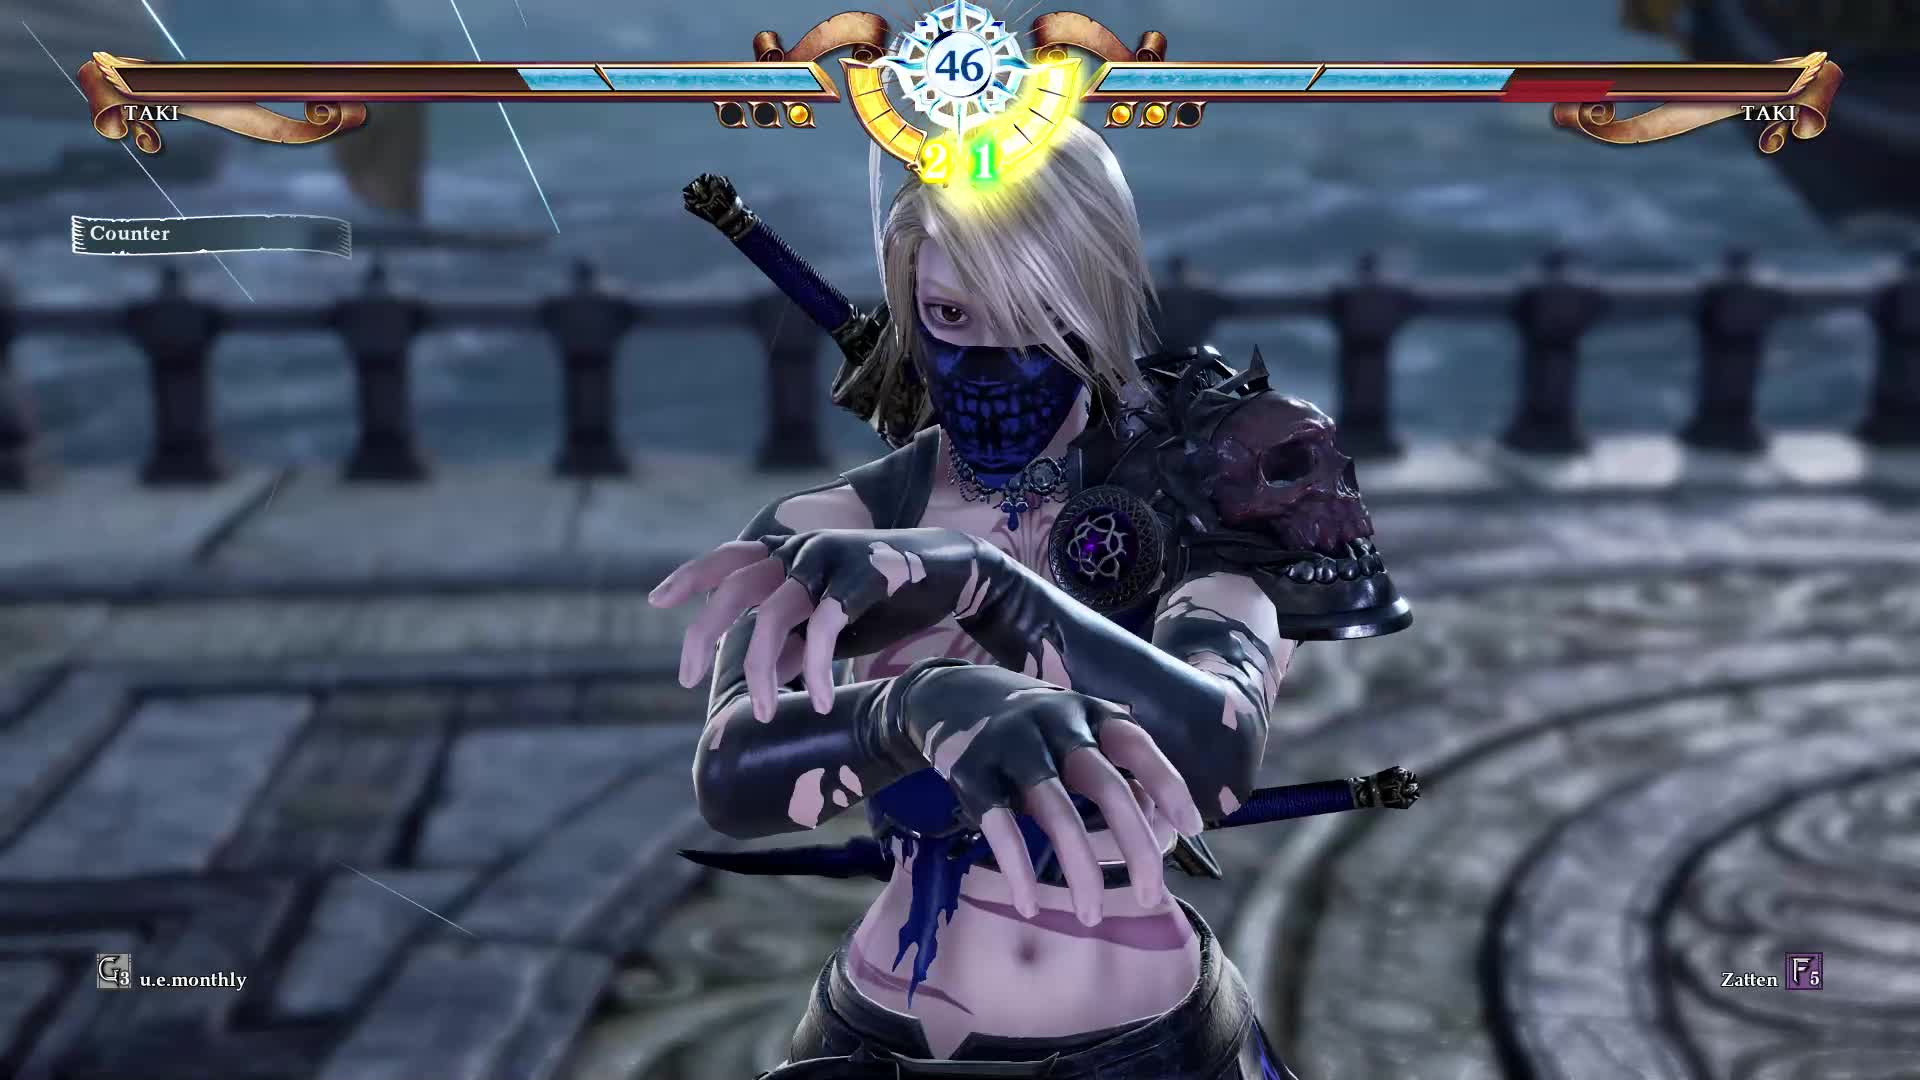 SOULCALIBUR™Ⅵ 11 21 2018 12 20 54 AM GIFs